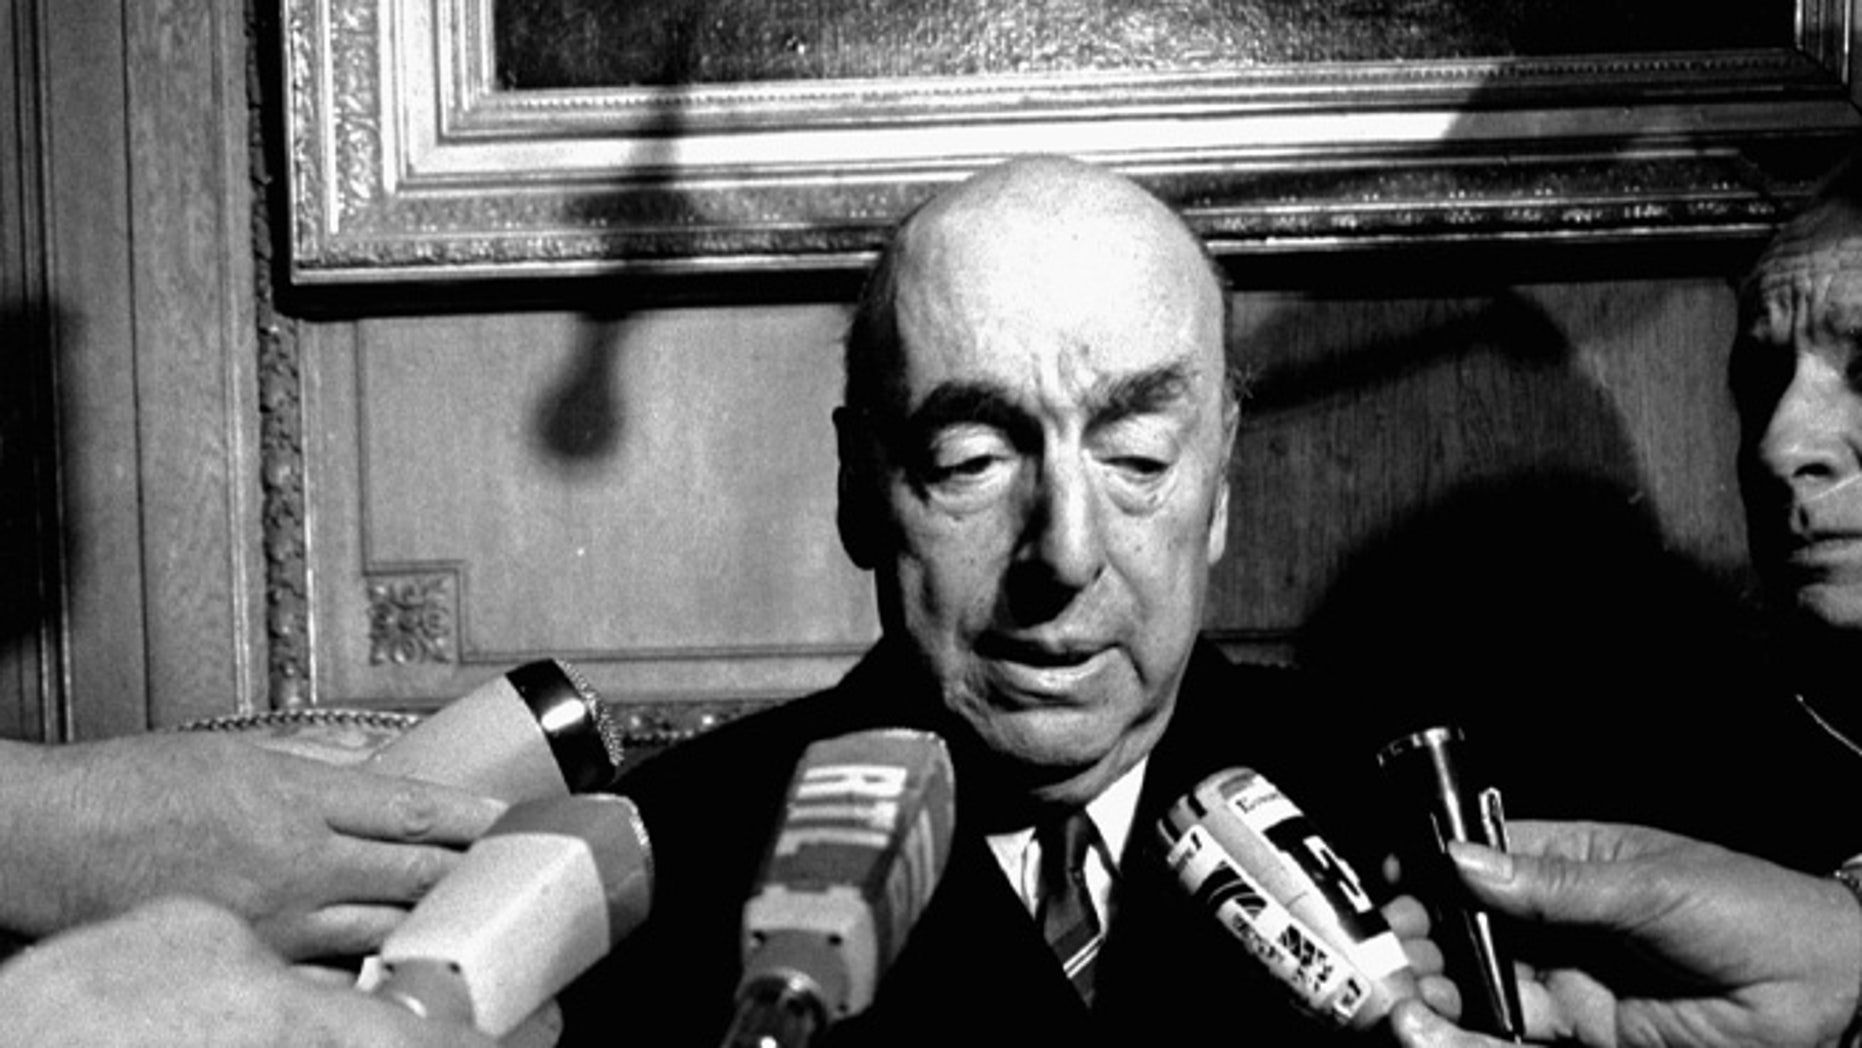 FILE - This Oct. 21, 1971 file photo shows Pablo Neruda, poet and then Chilean ambassador to France, talk with reporters in Paris after being named the 1971 Nobel Prize for Literature. Chileâs government is acknowledging that Neruda might have been killed after the 1973 coup that brought Gen. Augusto Pinochet to power. The Chile's Interior Ministry released a statement Thursday, Nov. 5, 2015, amid press reports that Neruda might not have died of cancer . (AP Photo/Laurent Rebours, File)